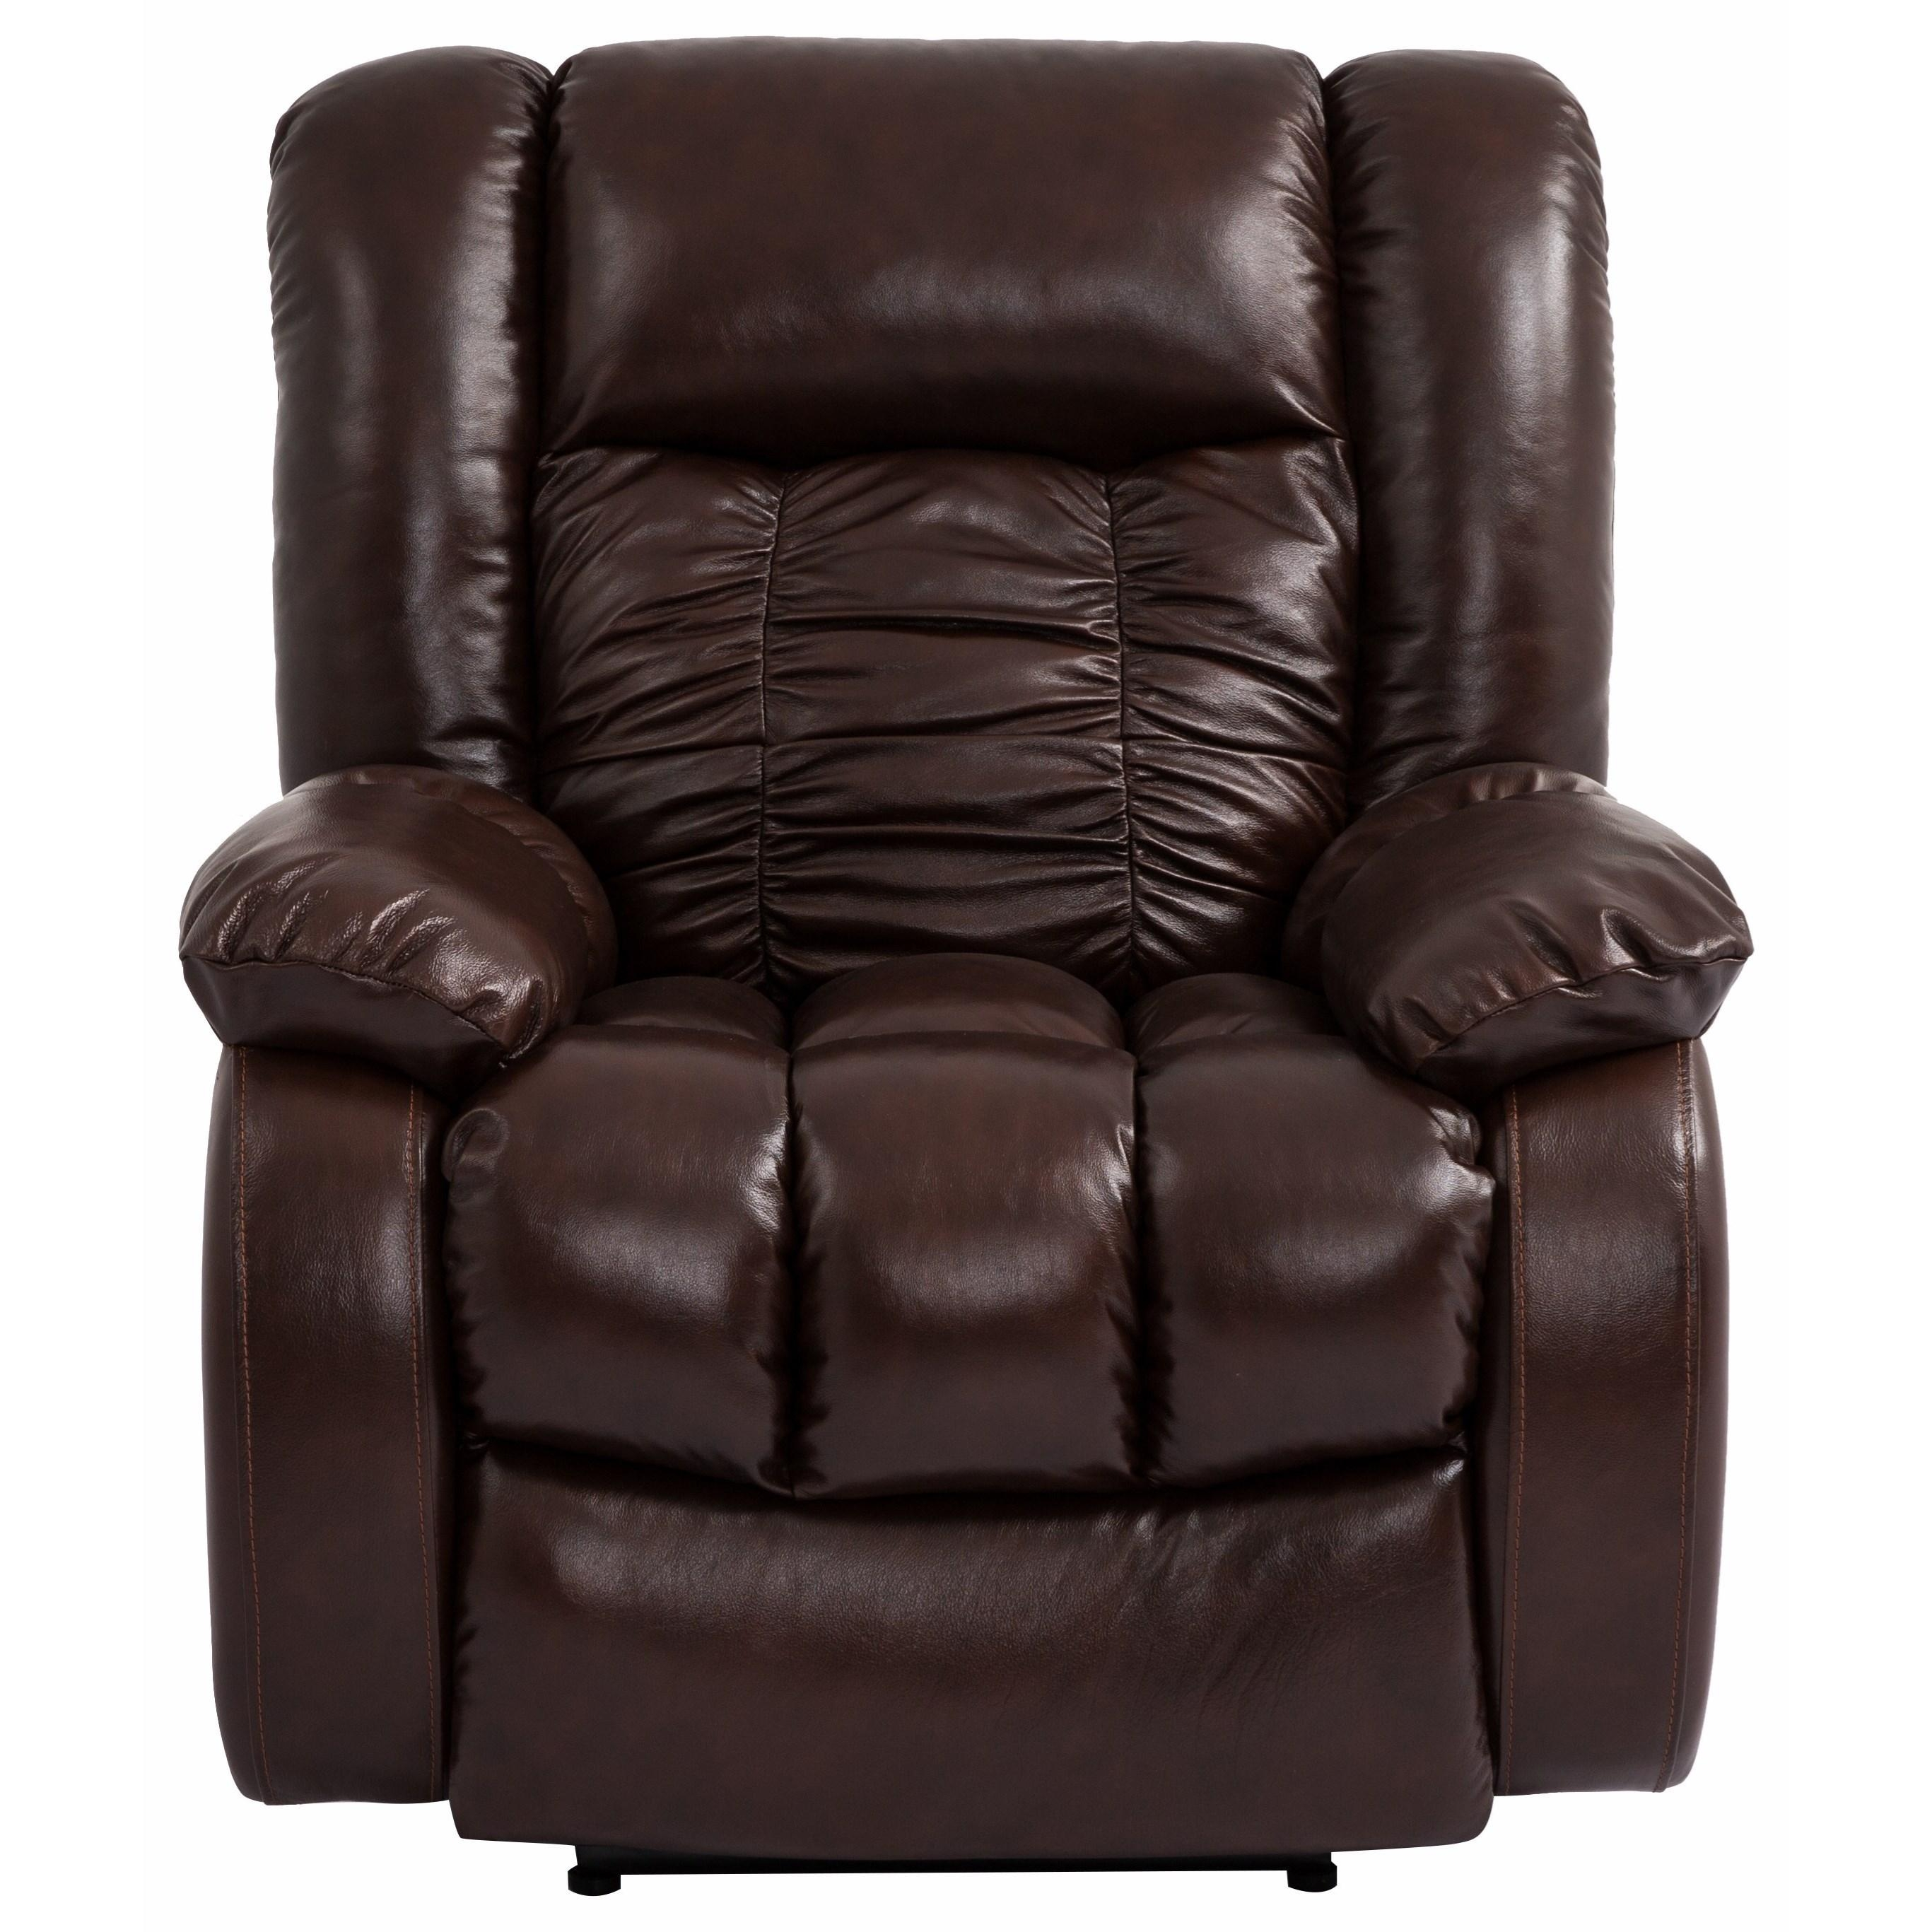 Cheers Sofa Uk358 Glider Recliner With Pillow Arms – Royal Pertaining To Cheers Sofas (View 18 of 20)